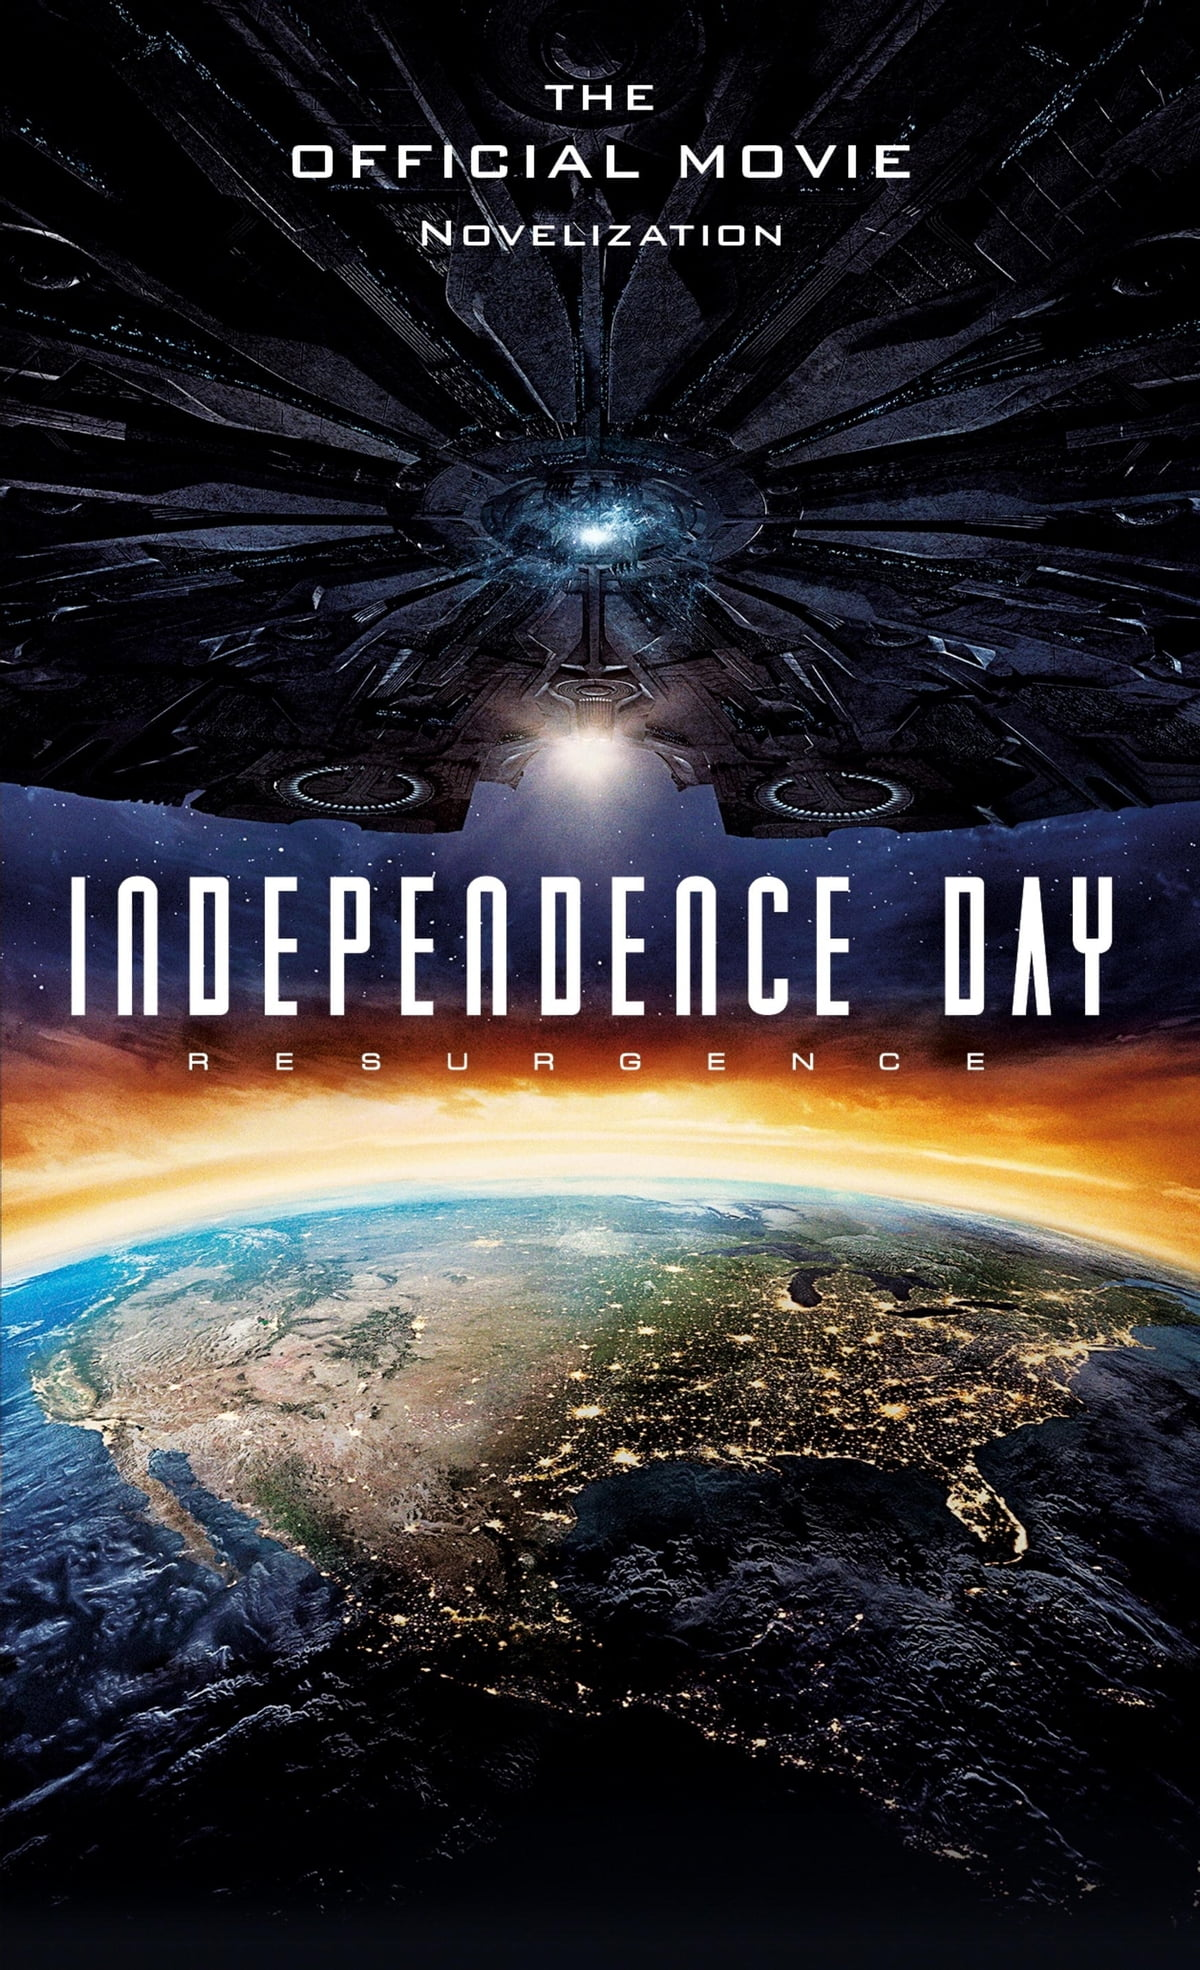 Independence Day: Resurgence: The Official Movie Novelization eBook by Alex  Irvine - 9781785651366 | Rakuten Kobo